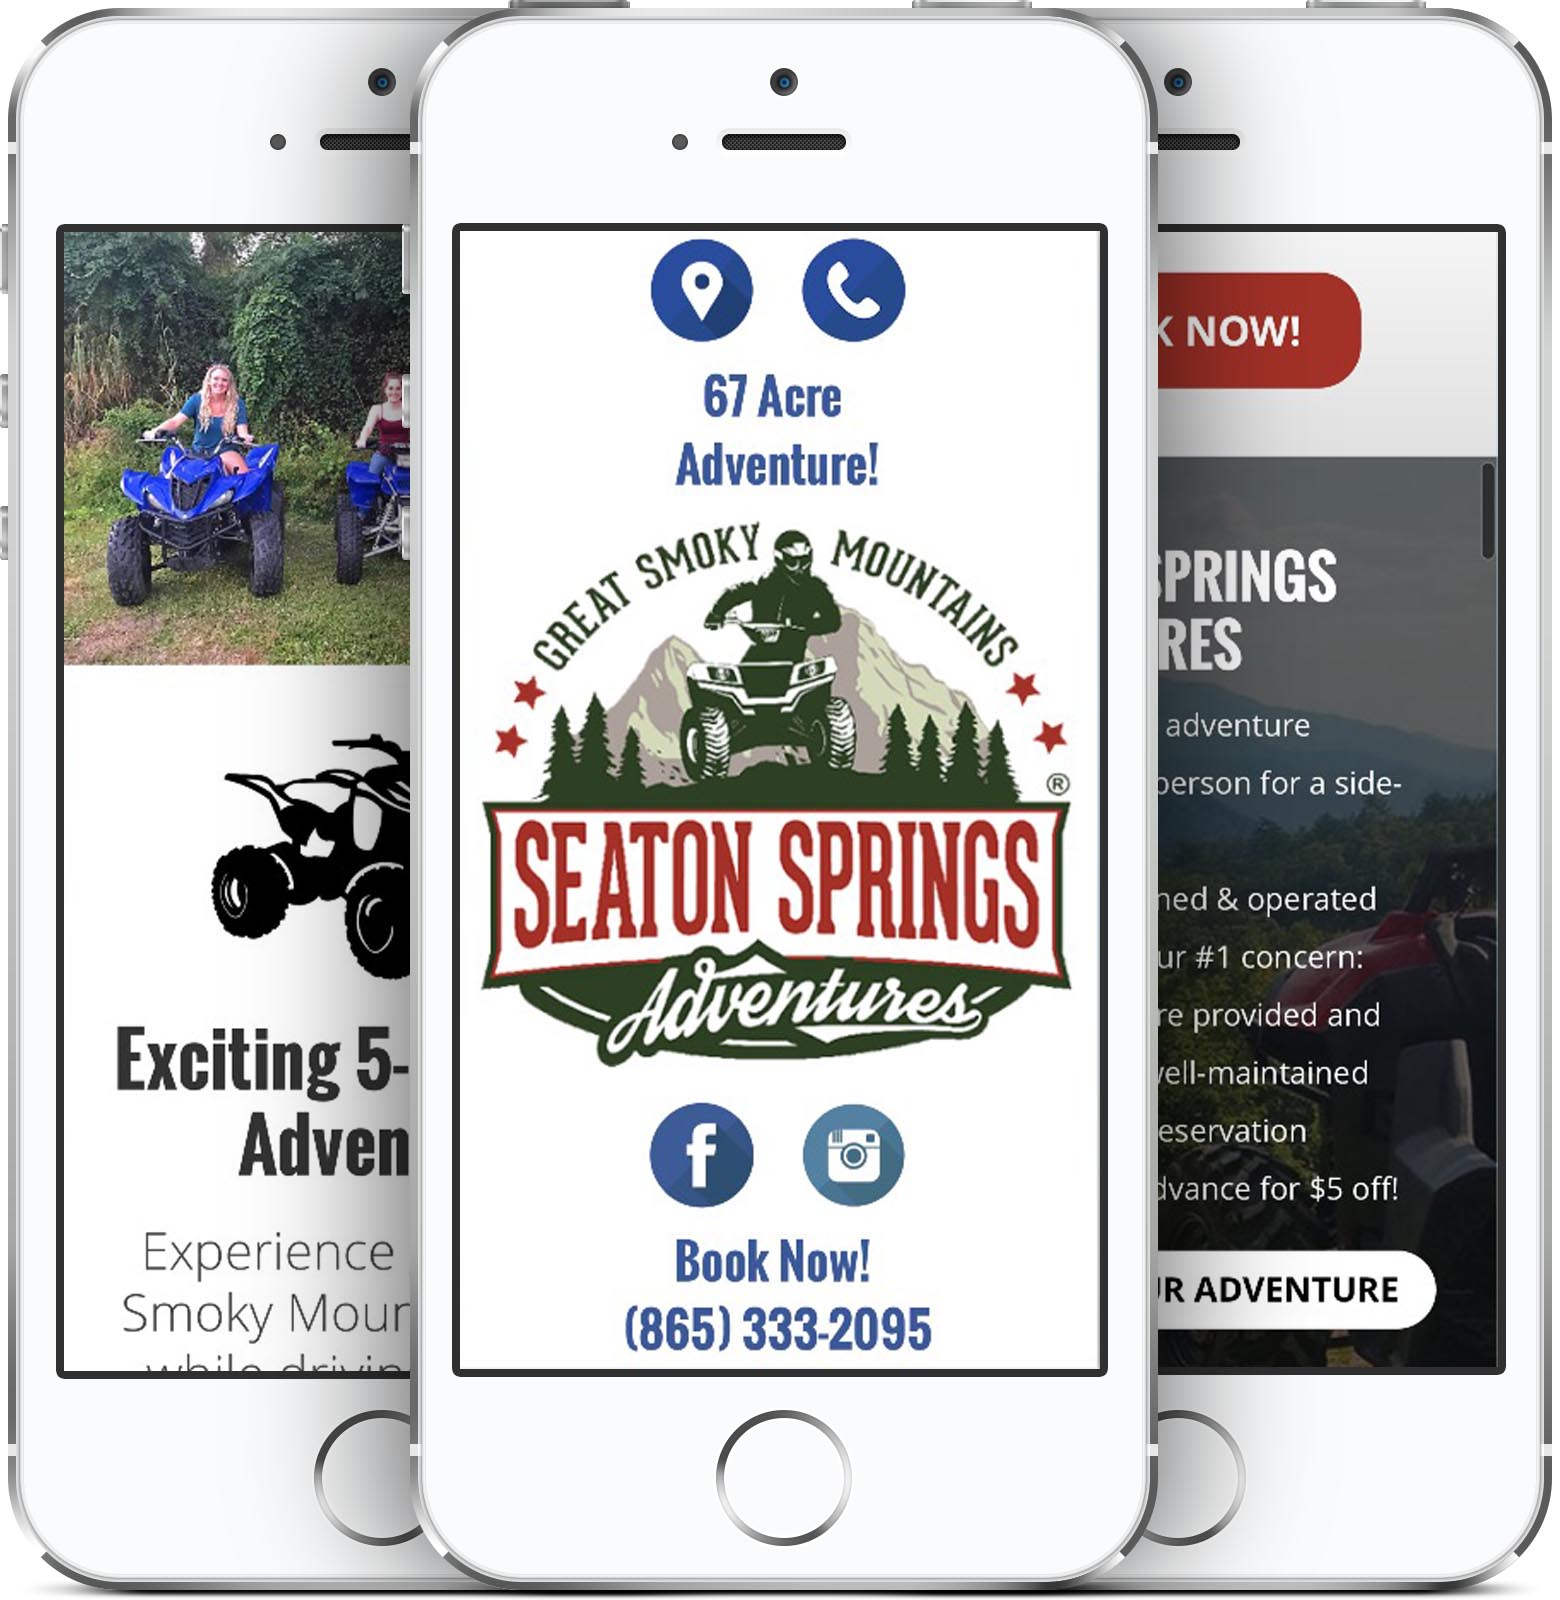 Seaton Springs Adventures Mobile-Friendly Web Design